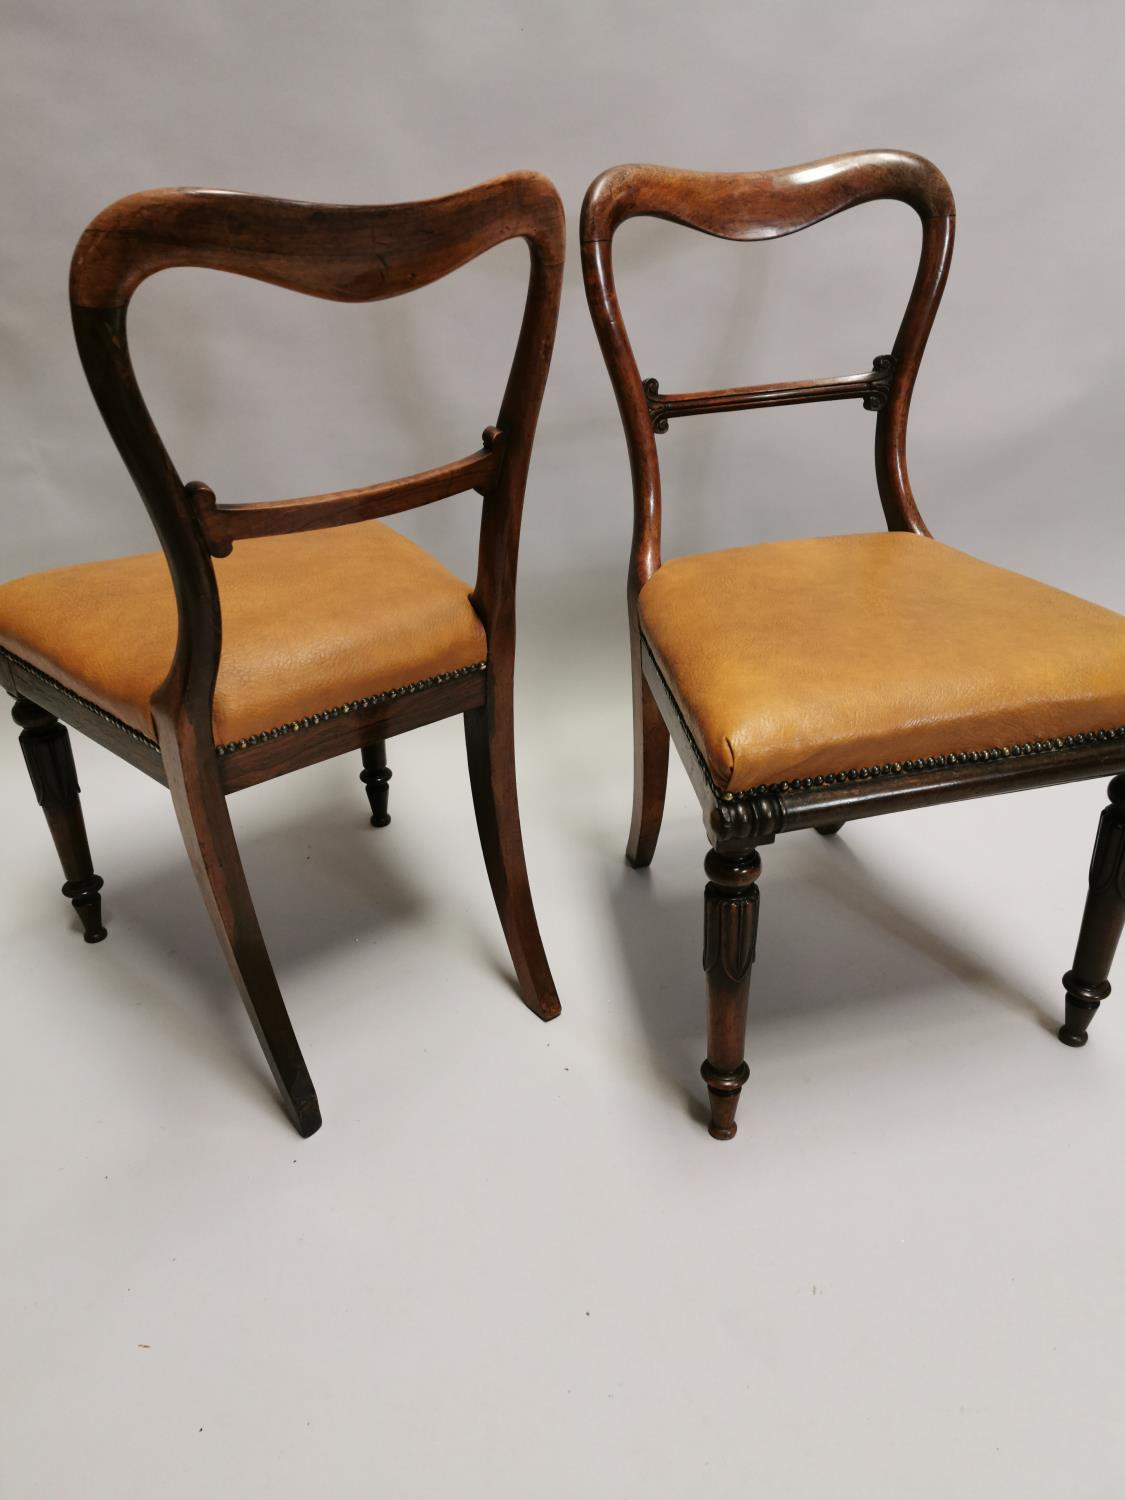 Pair of William IV rosewood side chairs - Image 6 of 7